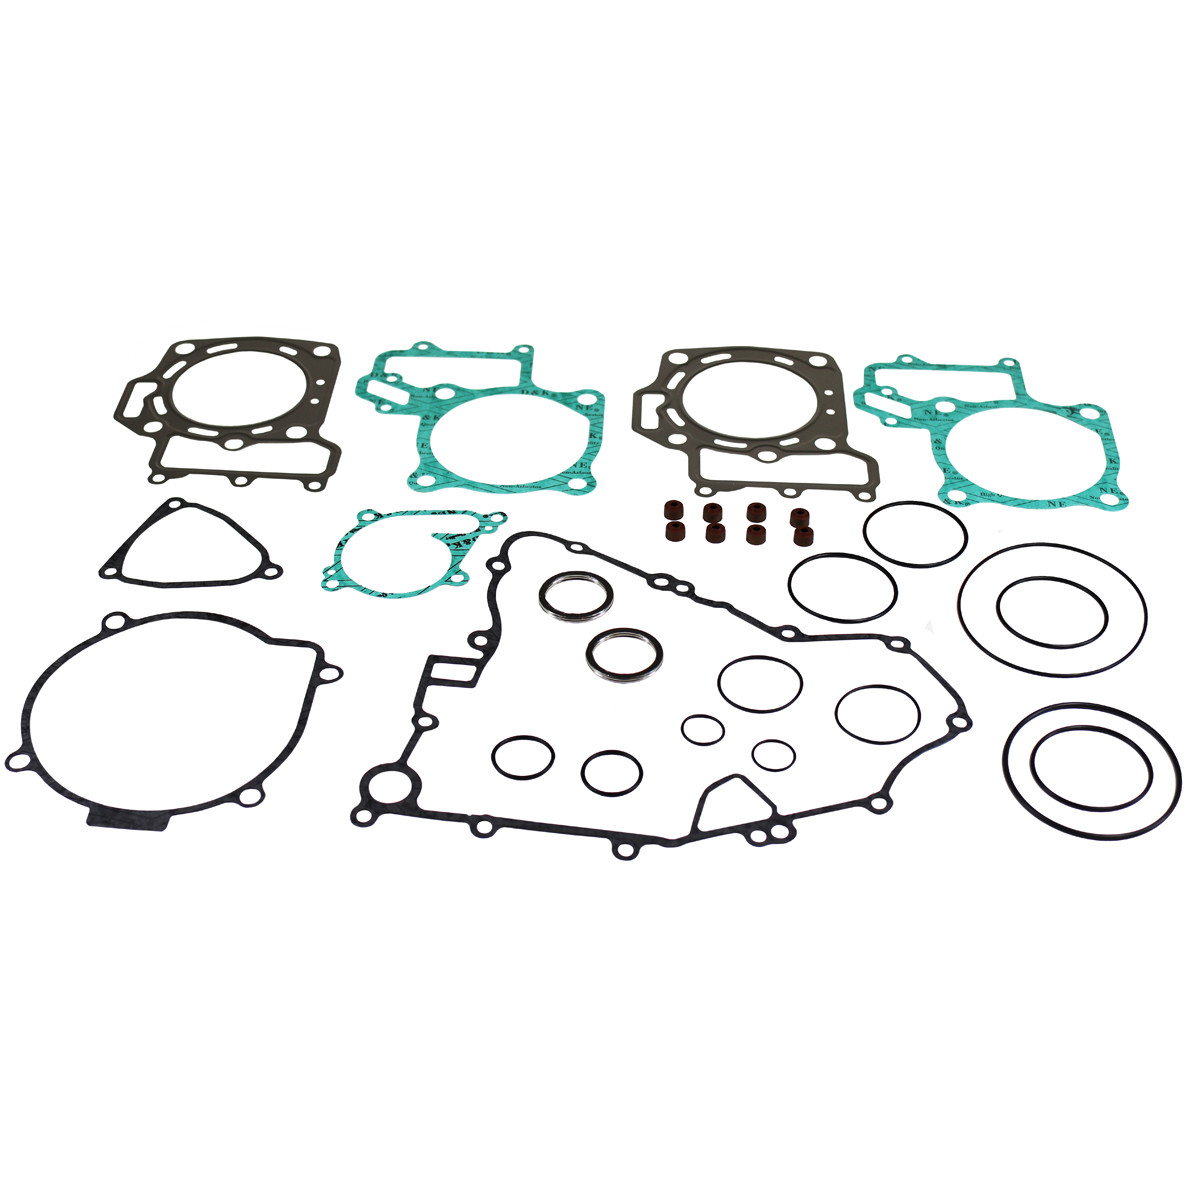 Namura Na F Full Gasket Kit Kawasaki Brute Force 650